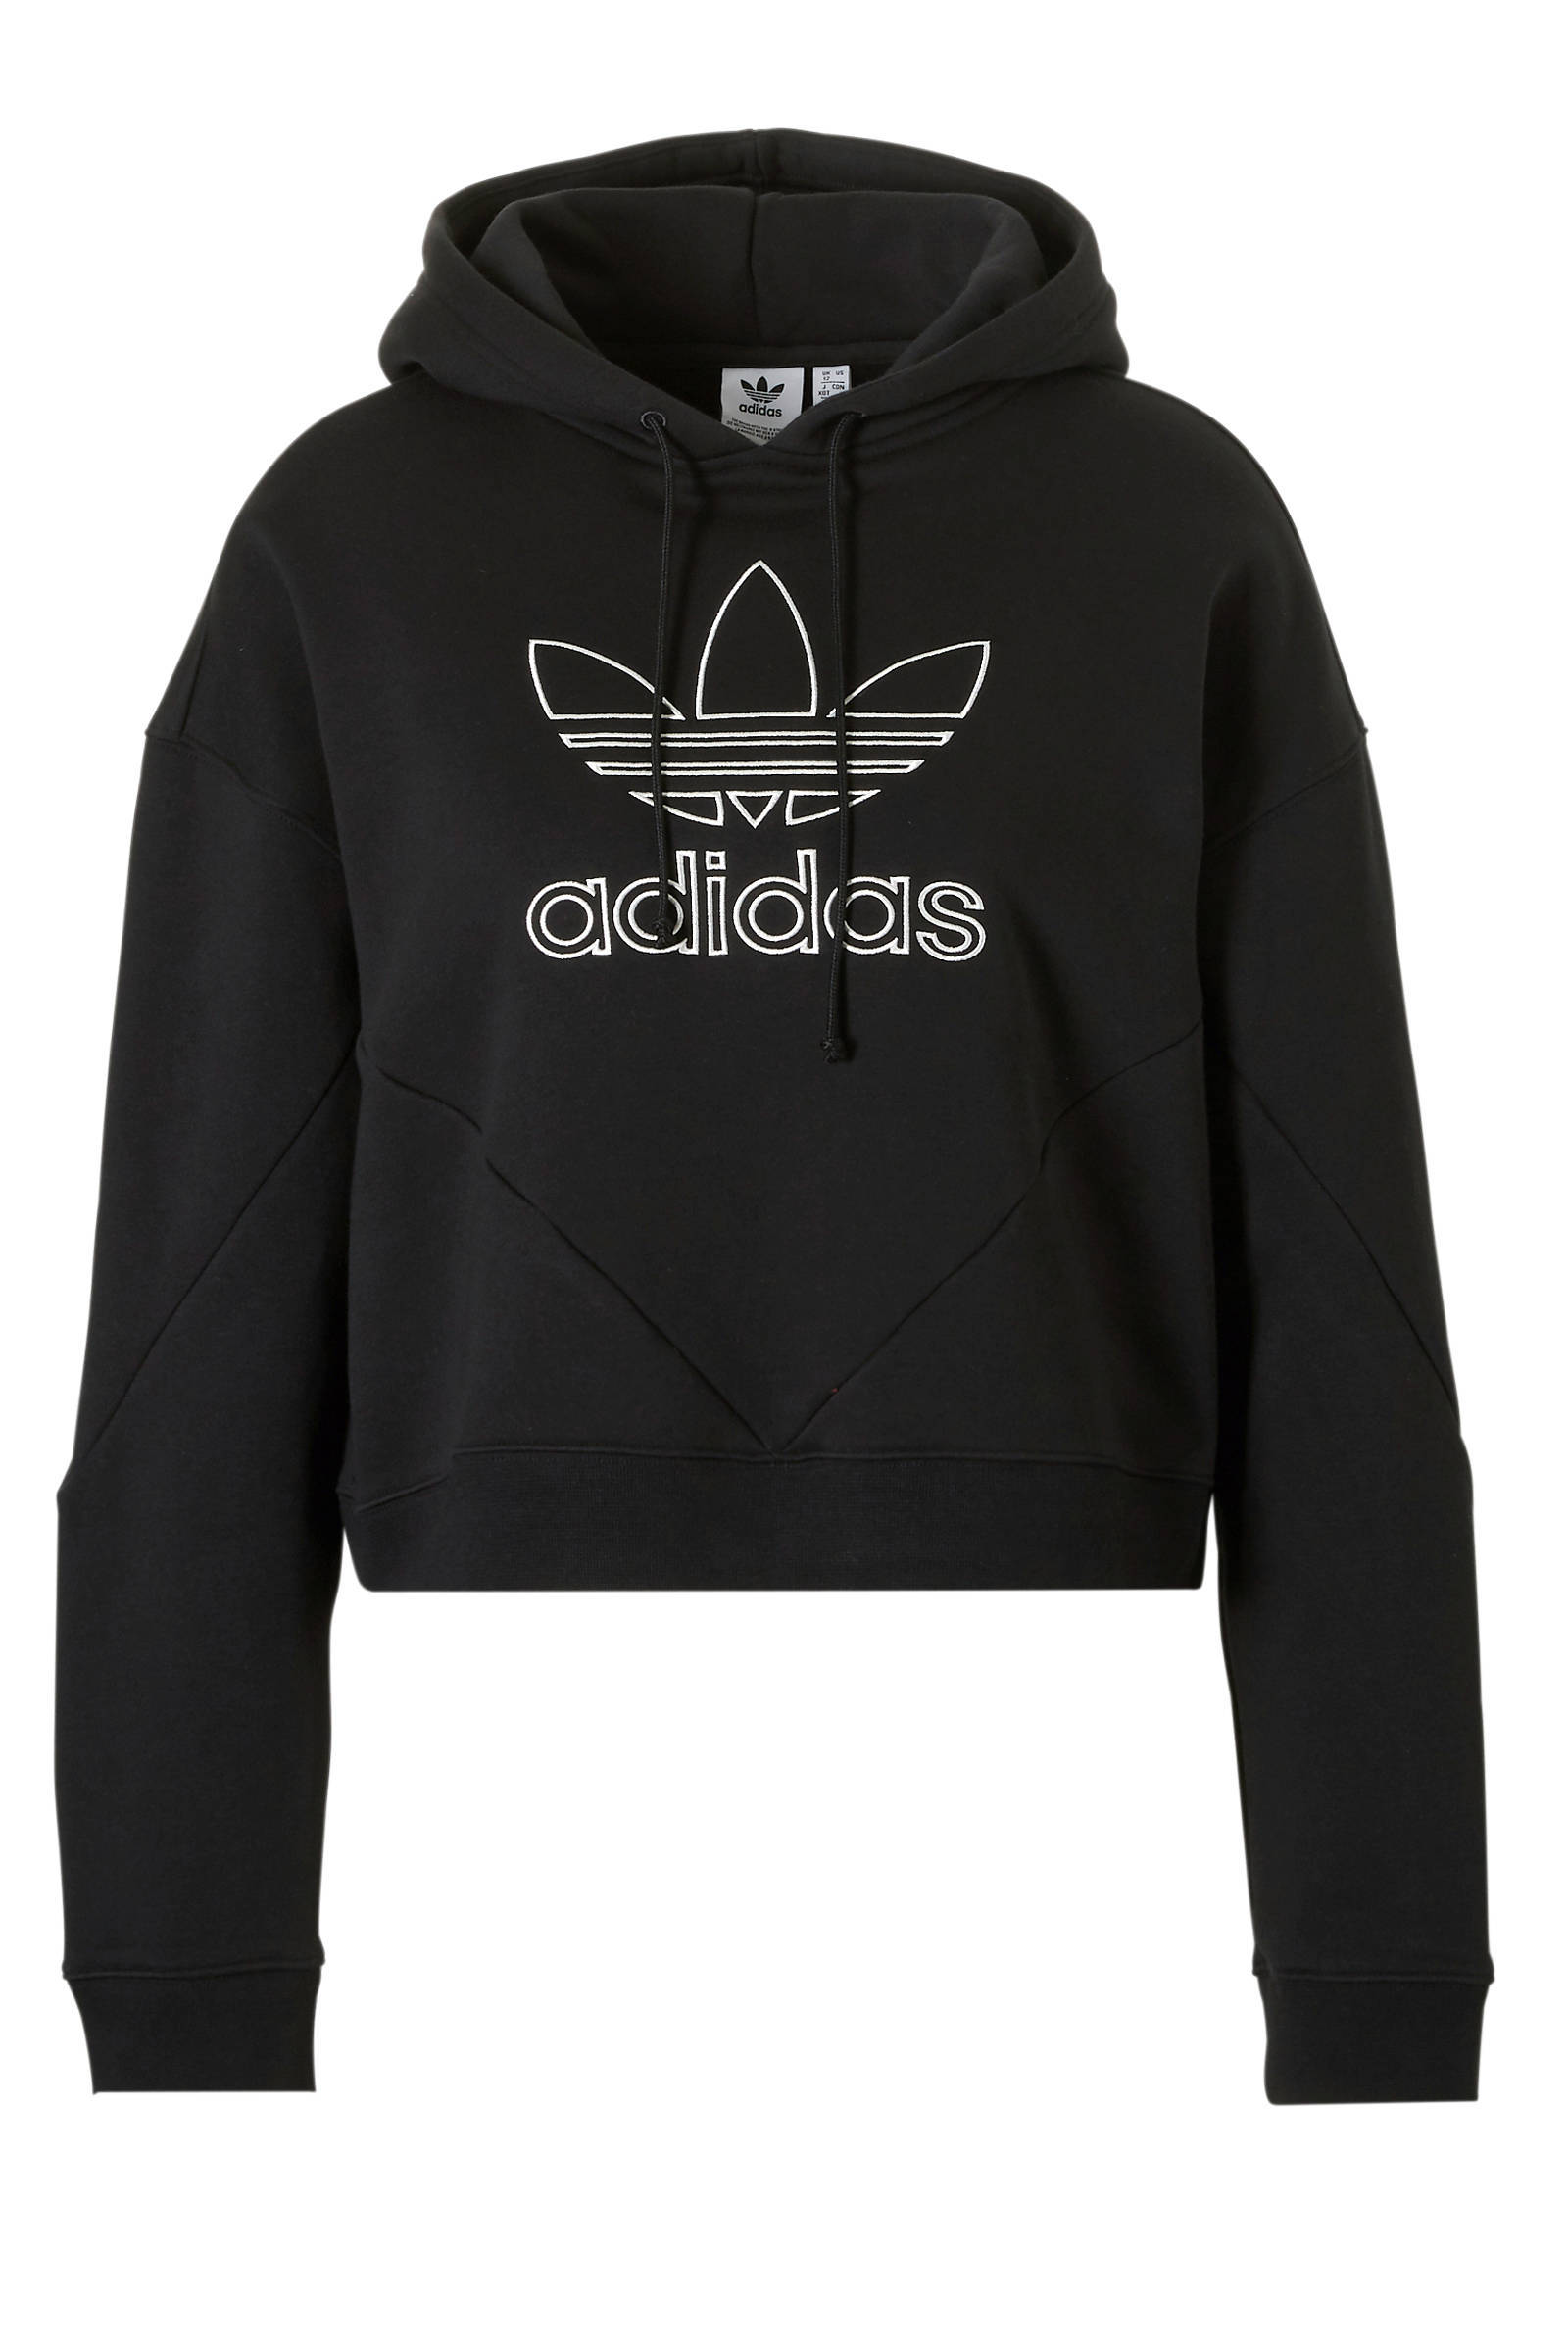 Details about adidas Originals ARCHIVE HOODIE RedCore White